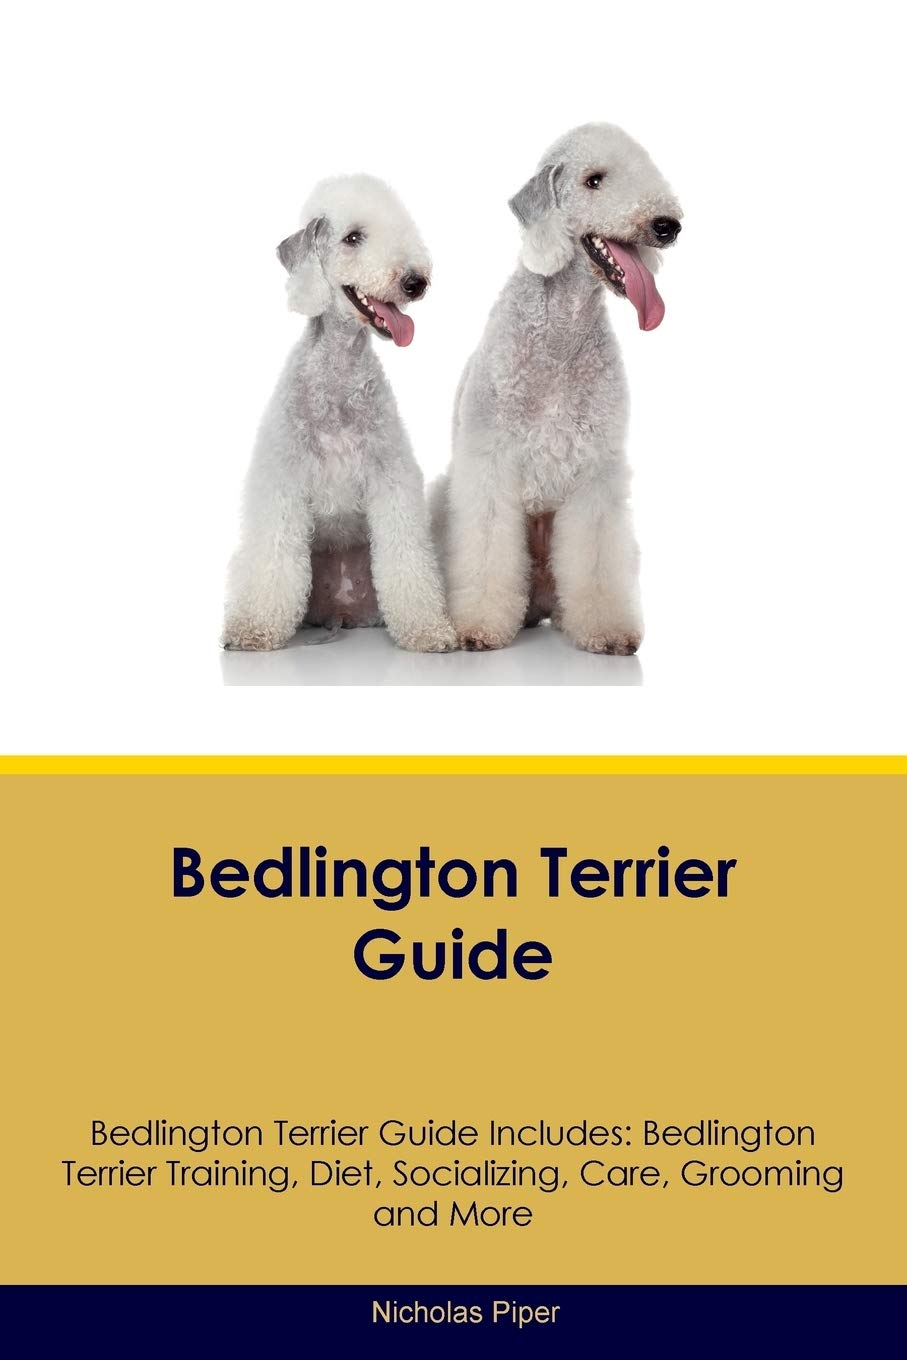 Bedlington Terrier Guide Bedlington Terrier Guide Includes: Bedlington Terrier Training, Diet, Socializing, Care…